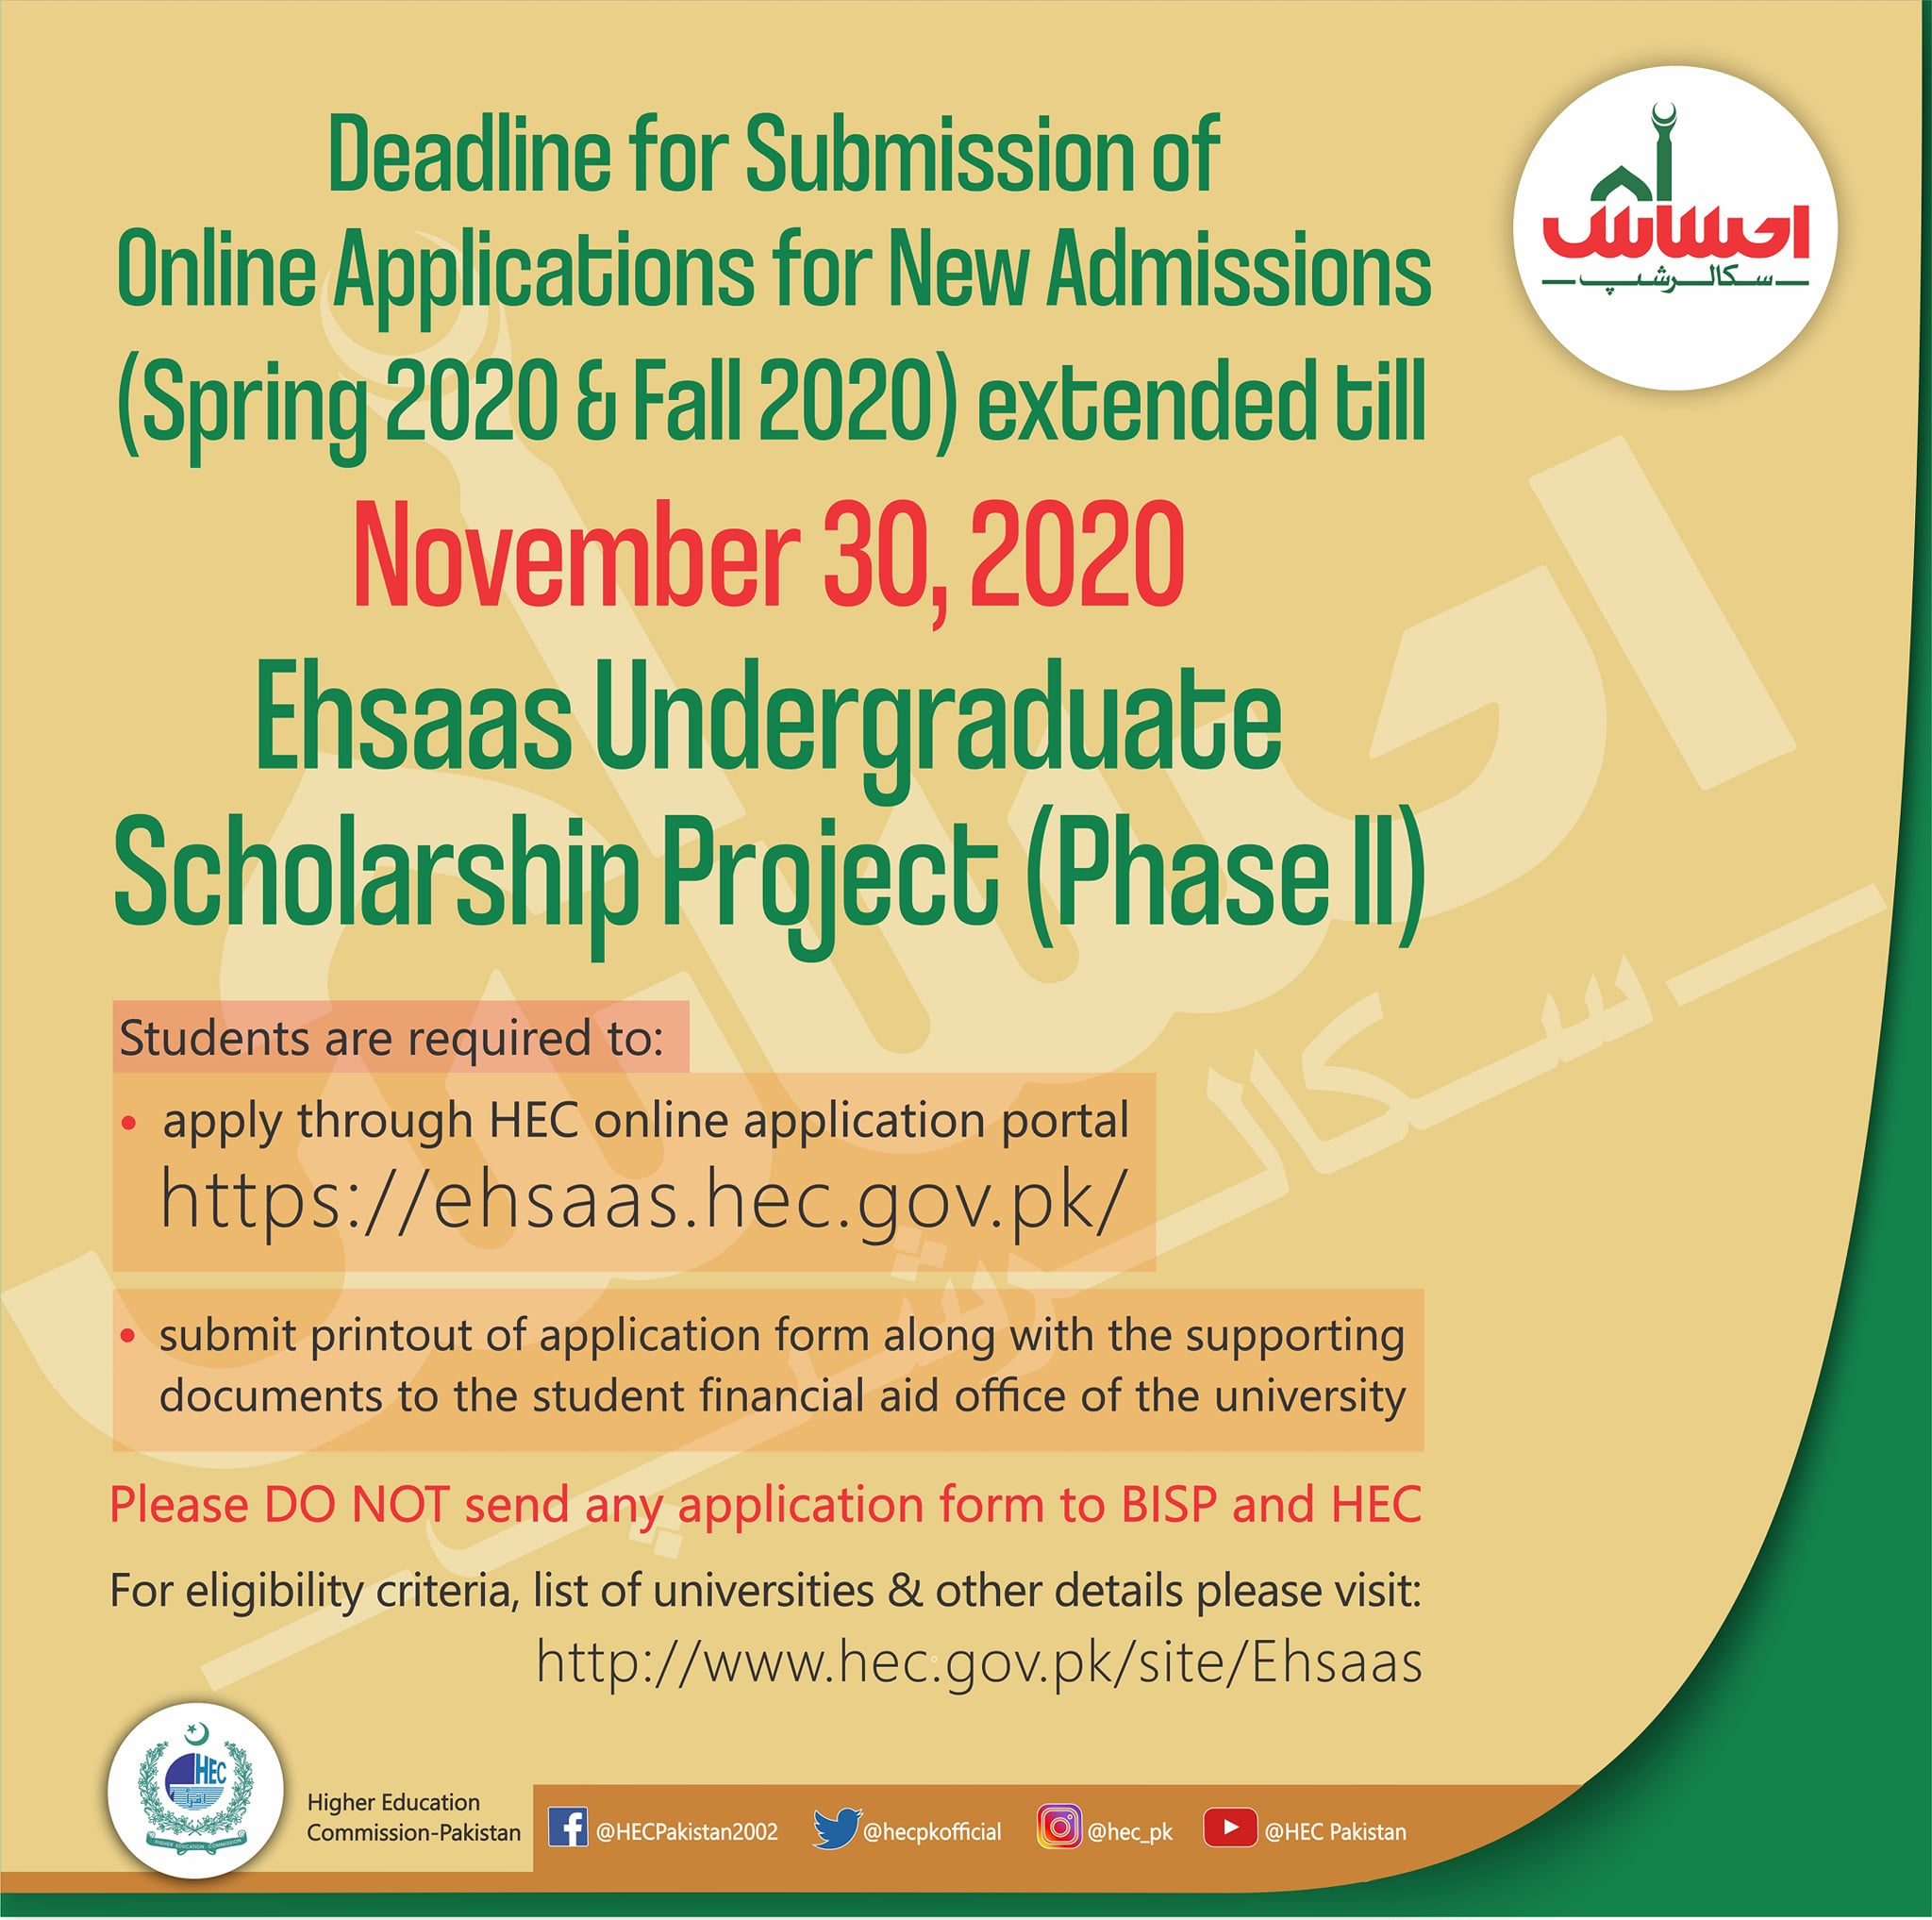 Ehsaas Undergraduate Scholarship Project for Spring & Fall 2020